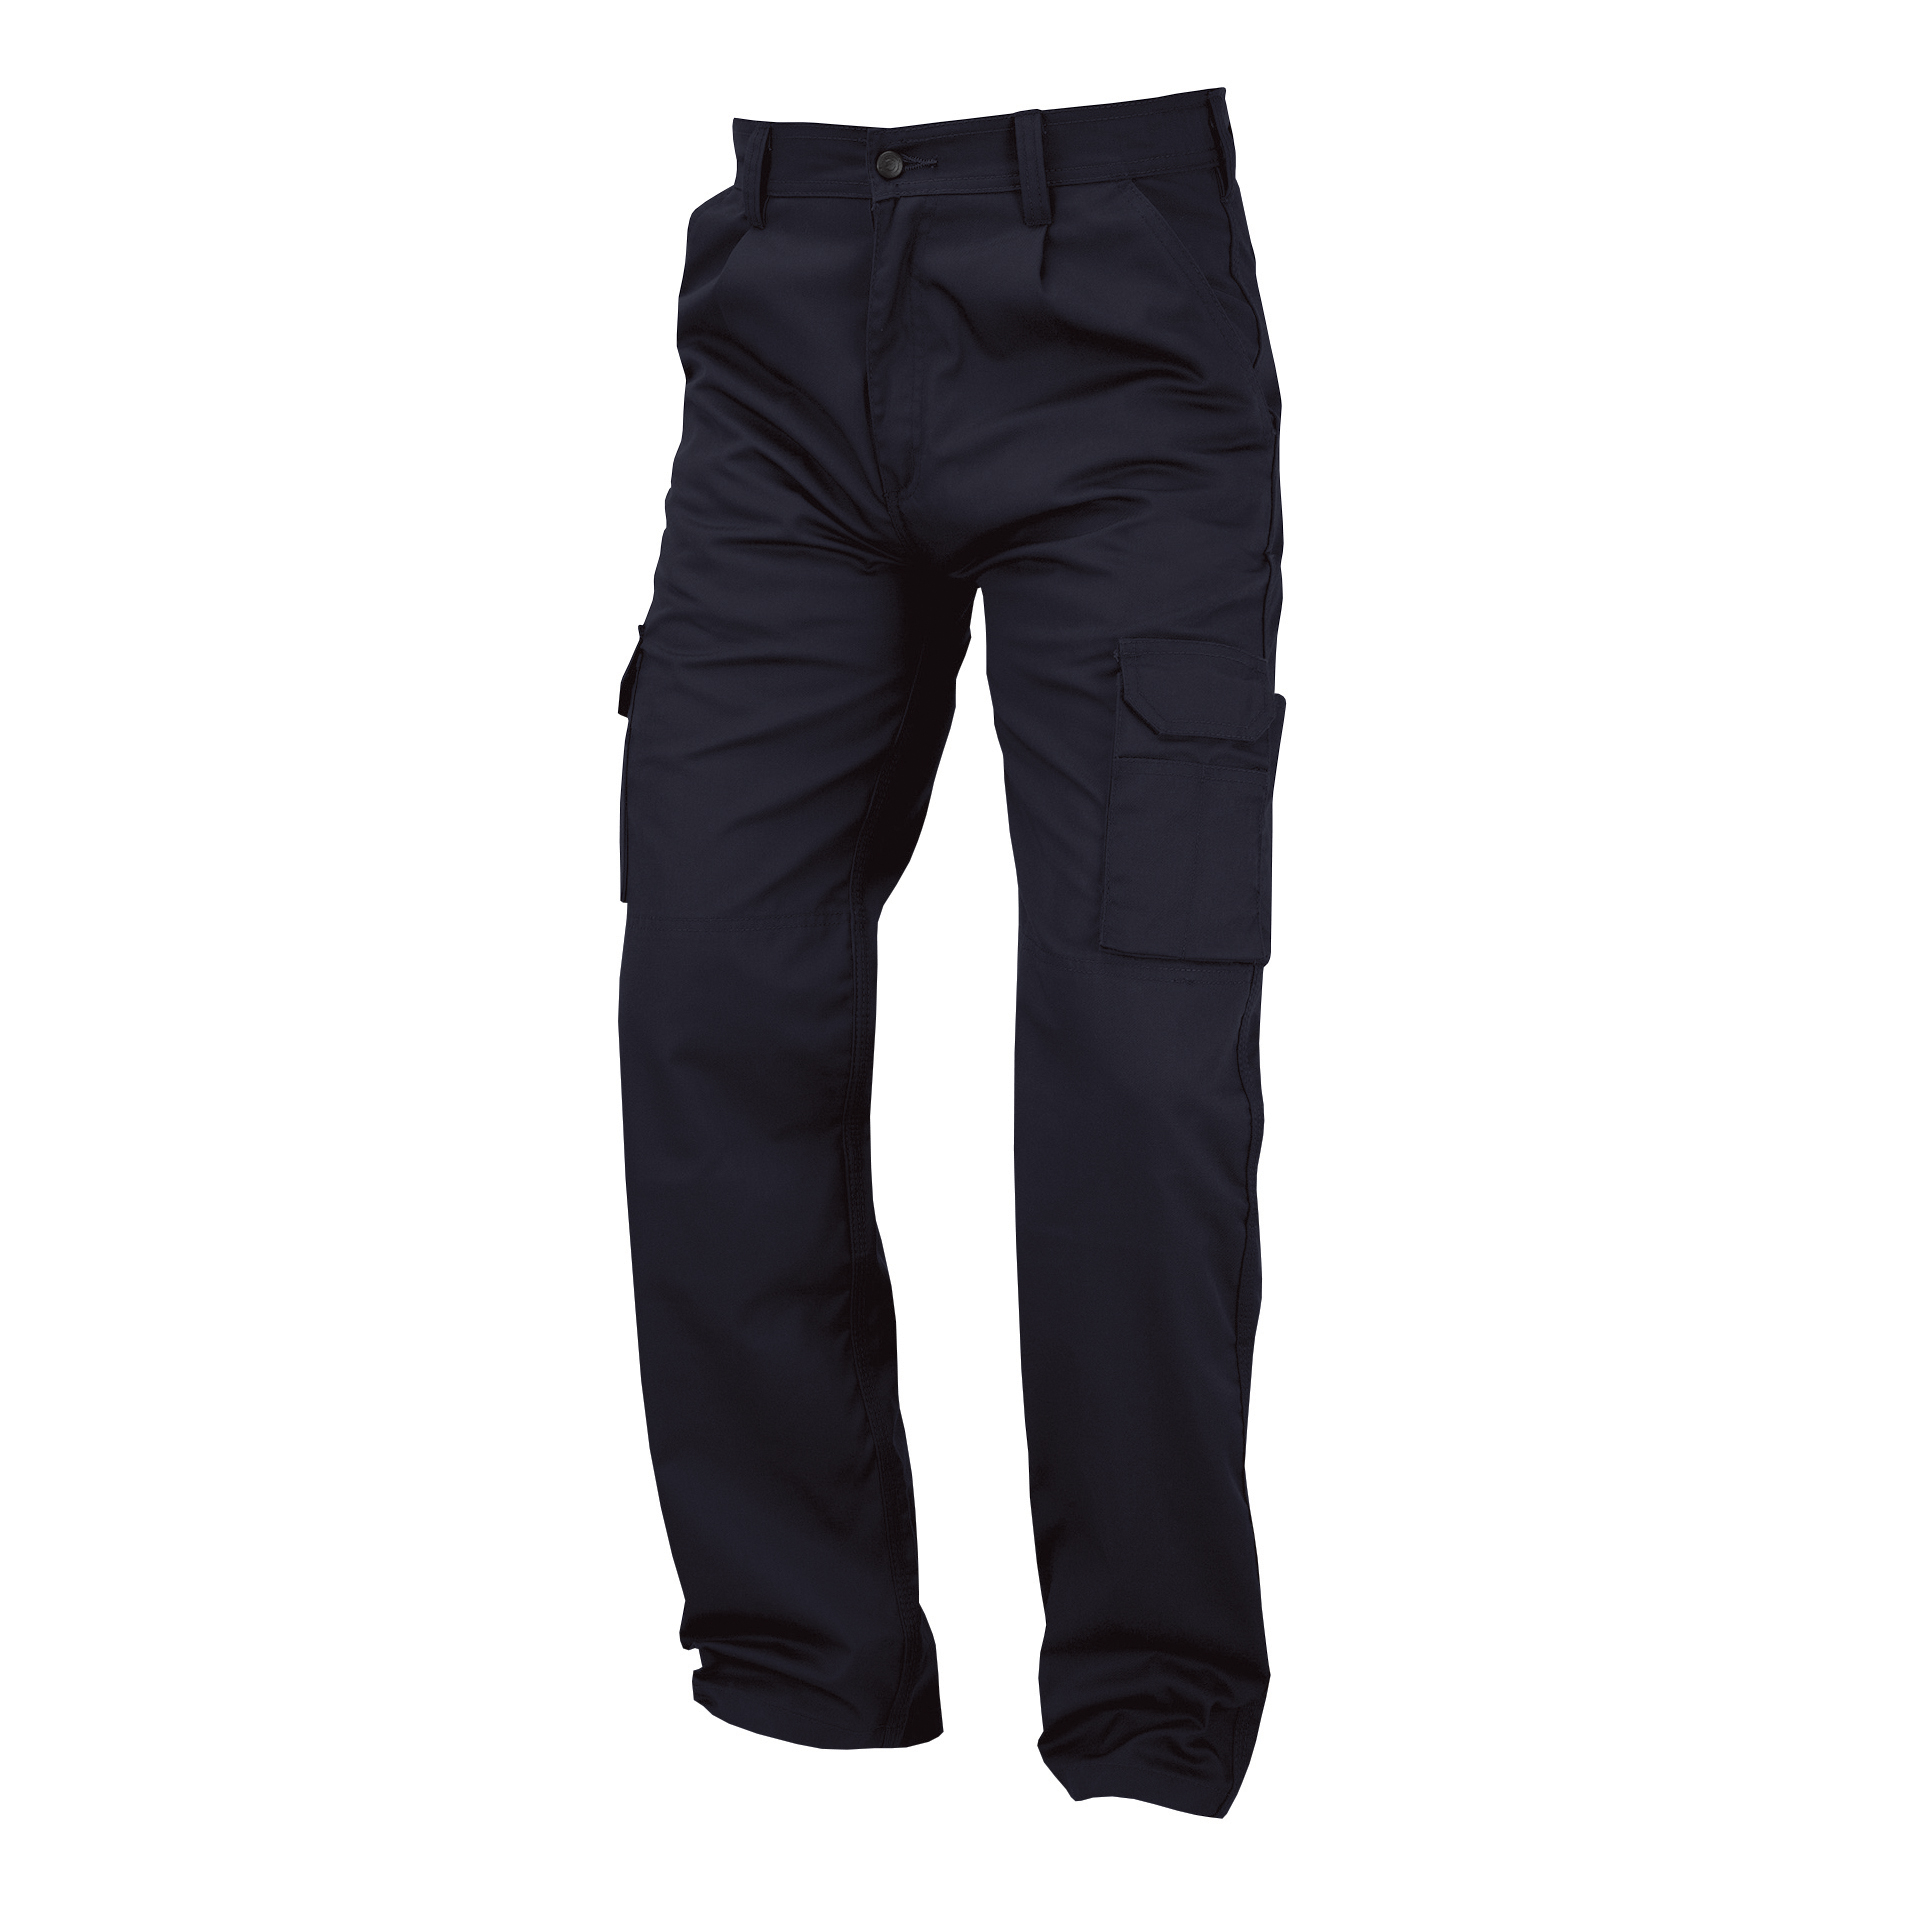 Combat Trouser Multi-functional Waist 44in Leg 29in Navy Ref PCTHWN44S *Approx 3 Day Leadtime*